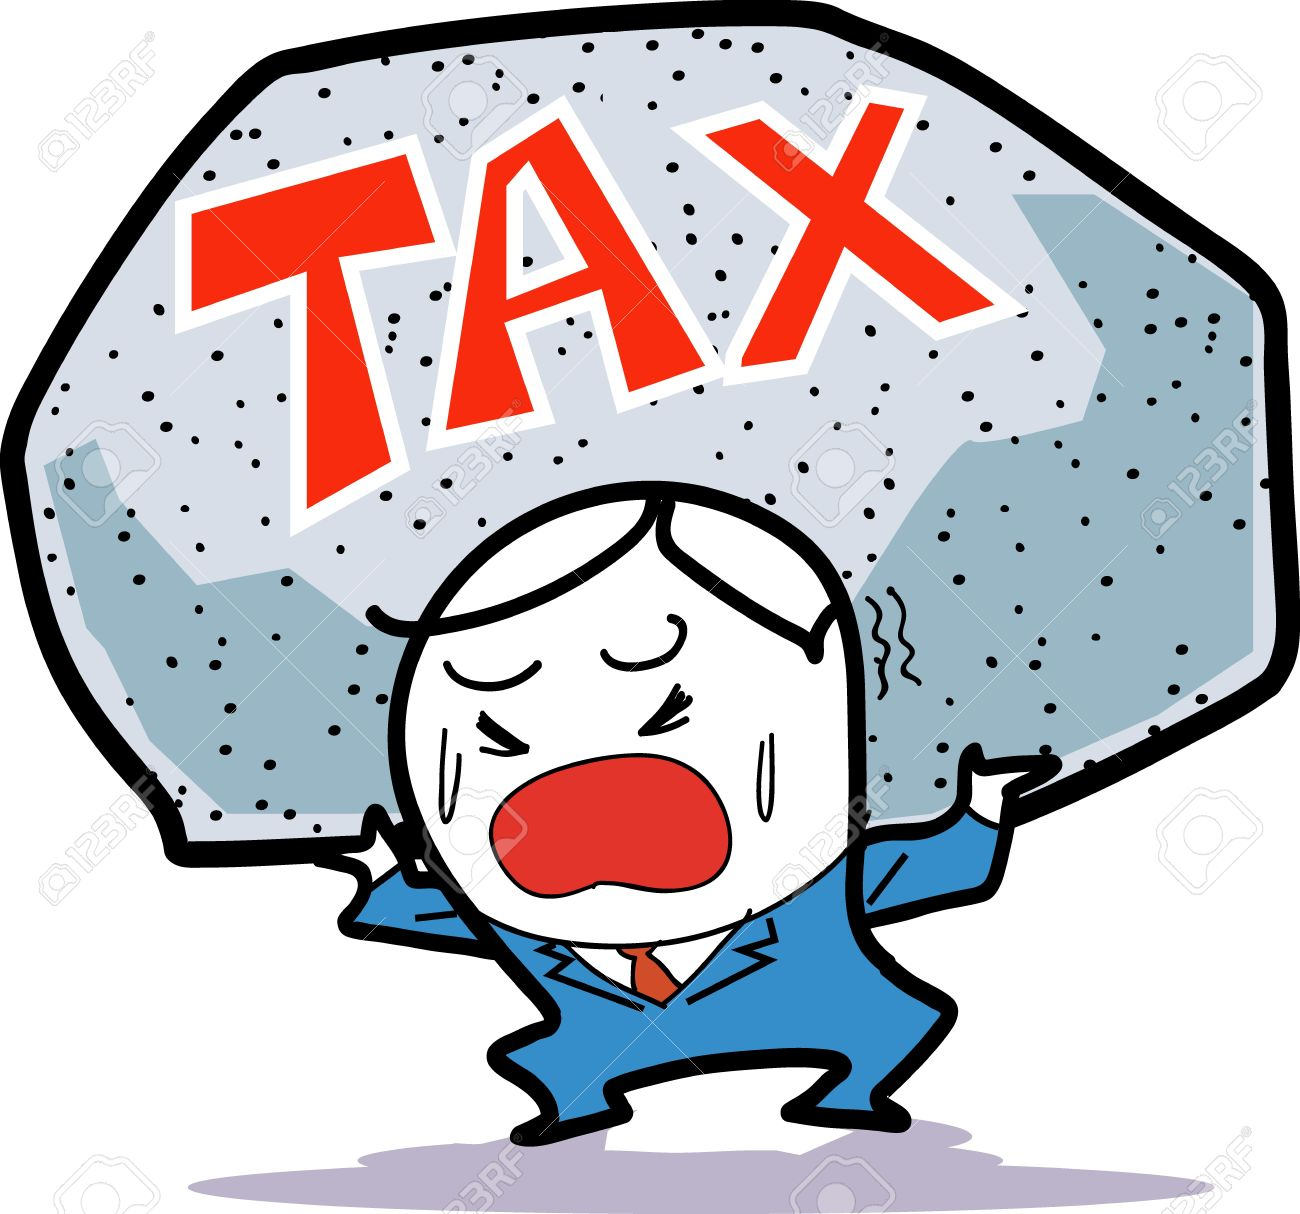 Tax Burden Stock Photo, Picture And Royalty Free Image. Image 15421430.